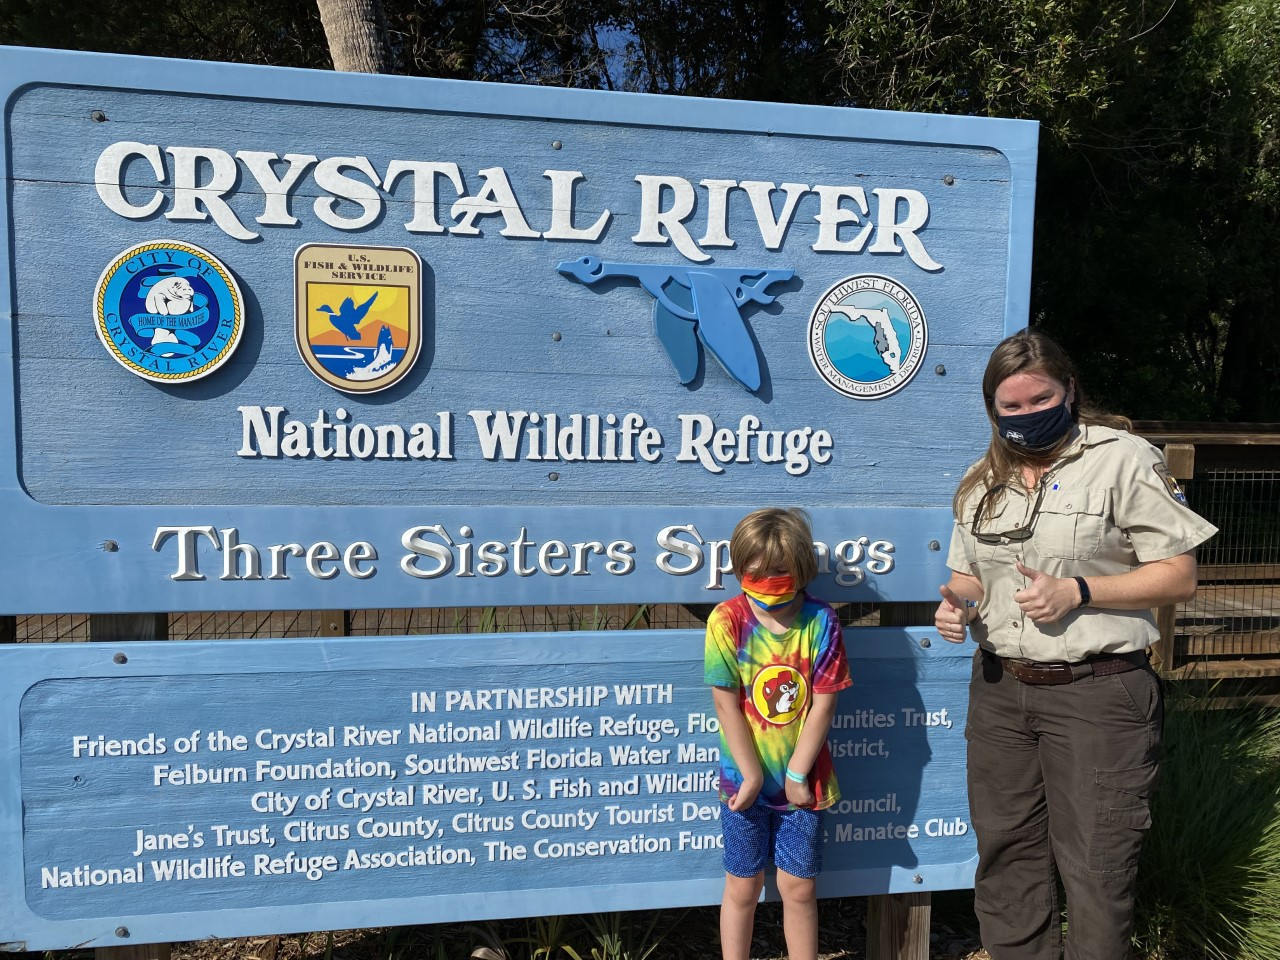 woman in FWS uniform flashing 2 thumbs up next to kid in tie-dye T-shirt in front of Crystal River National Wildlife Refuge sign